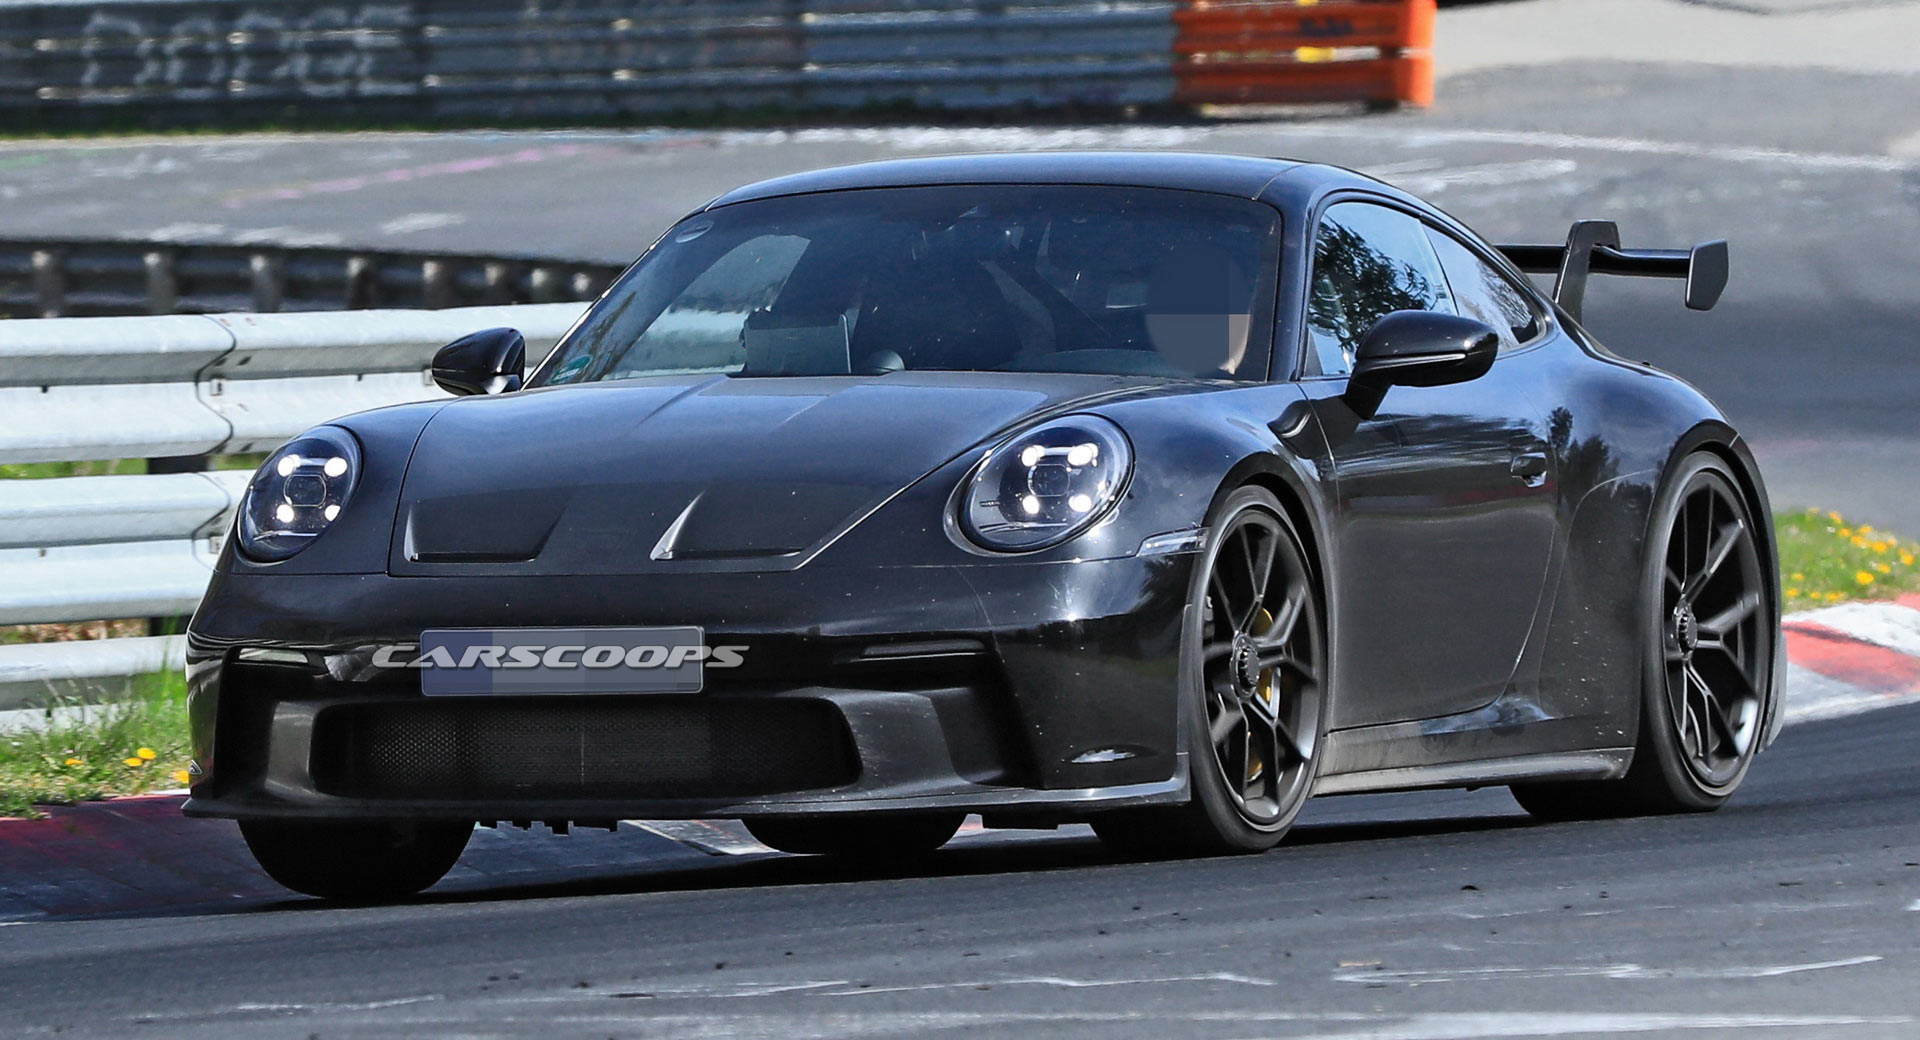 2021 911 Gt3 Most Revealing Spy Shots Yet For Porsche S New Track Weapon Carscoops